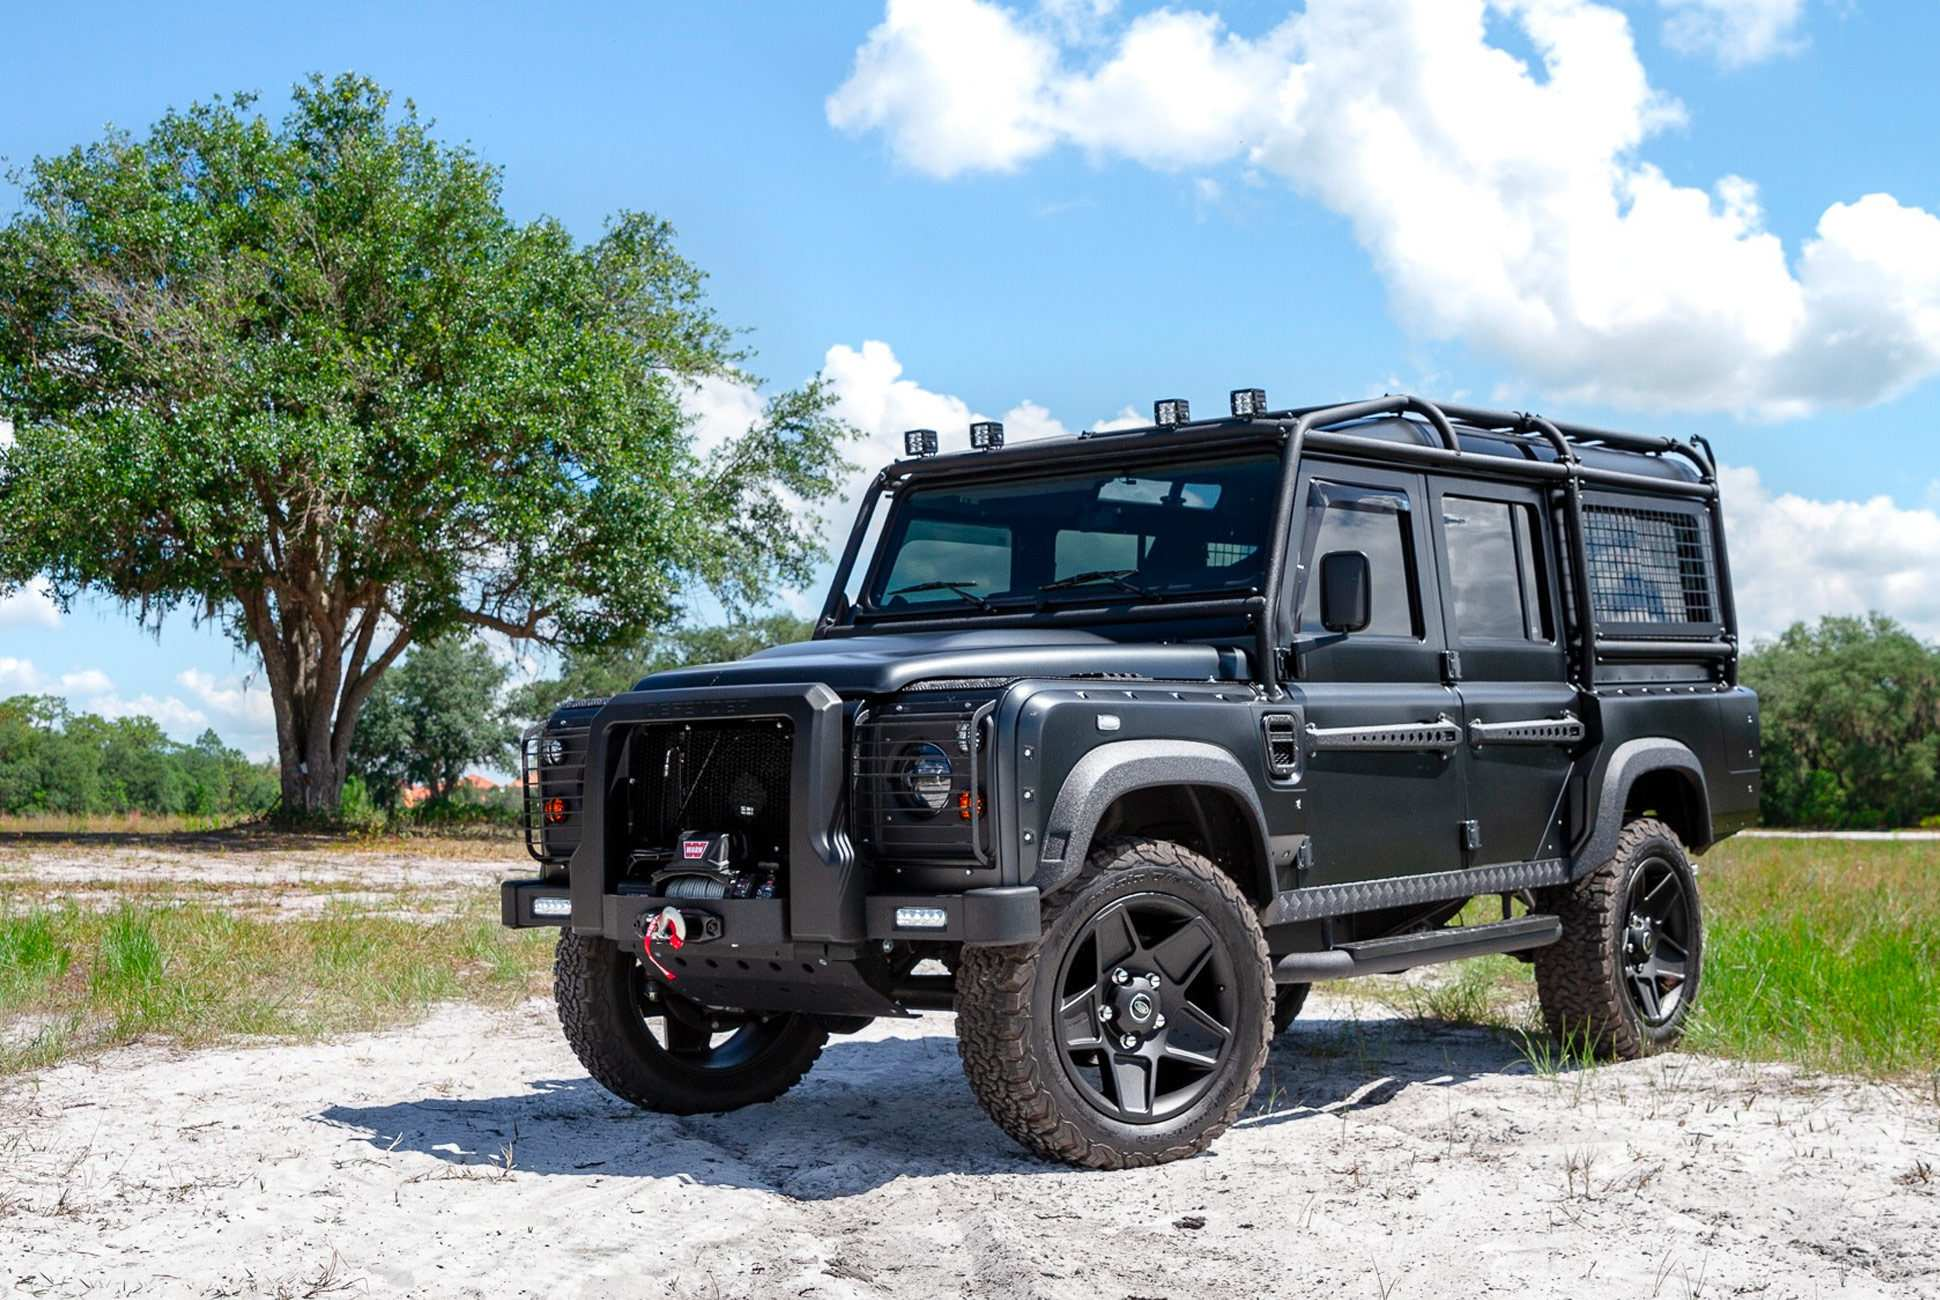 79 Gallery of 2019 Land Rover Defender New Review for 2019 Land Rover Defender